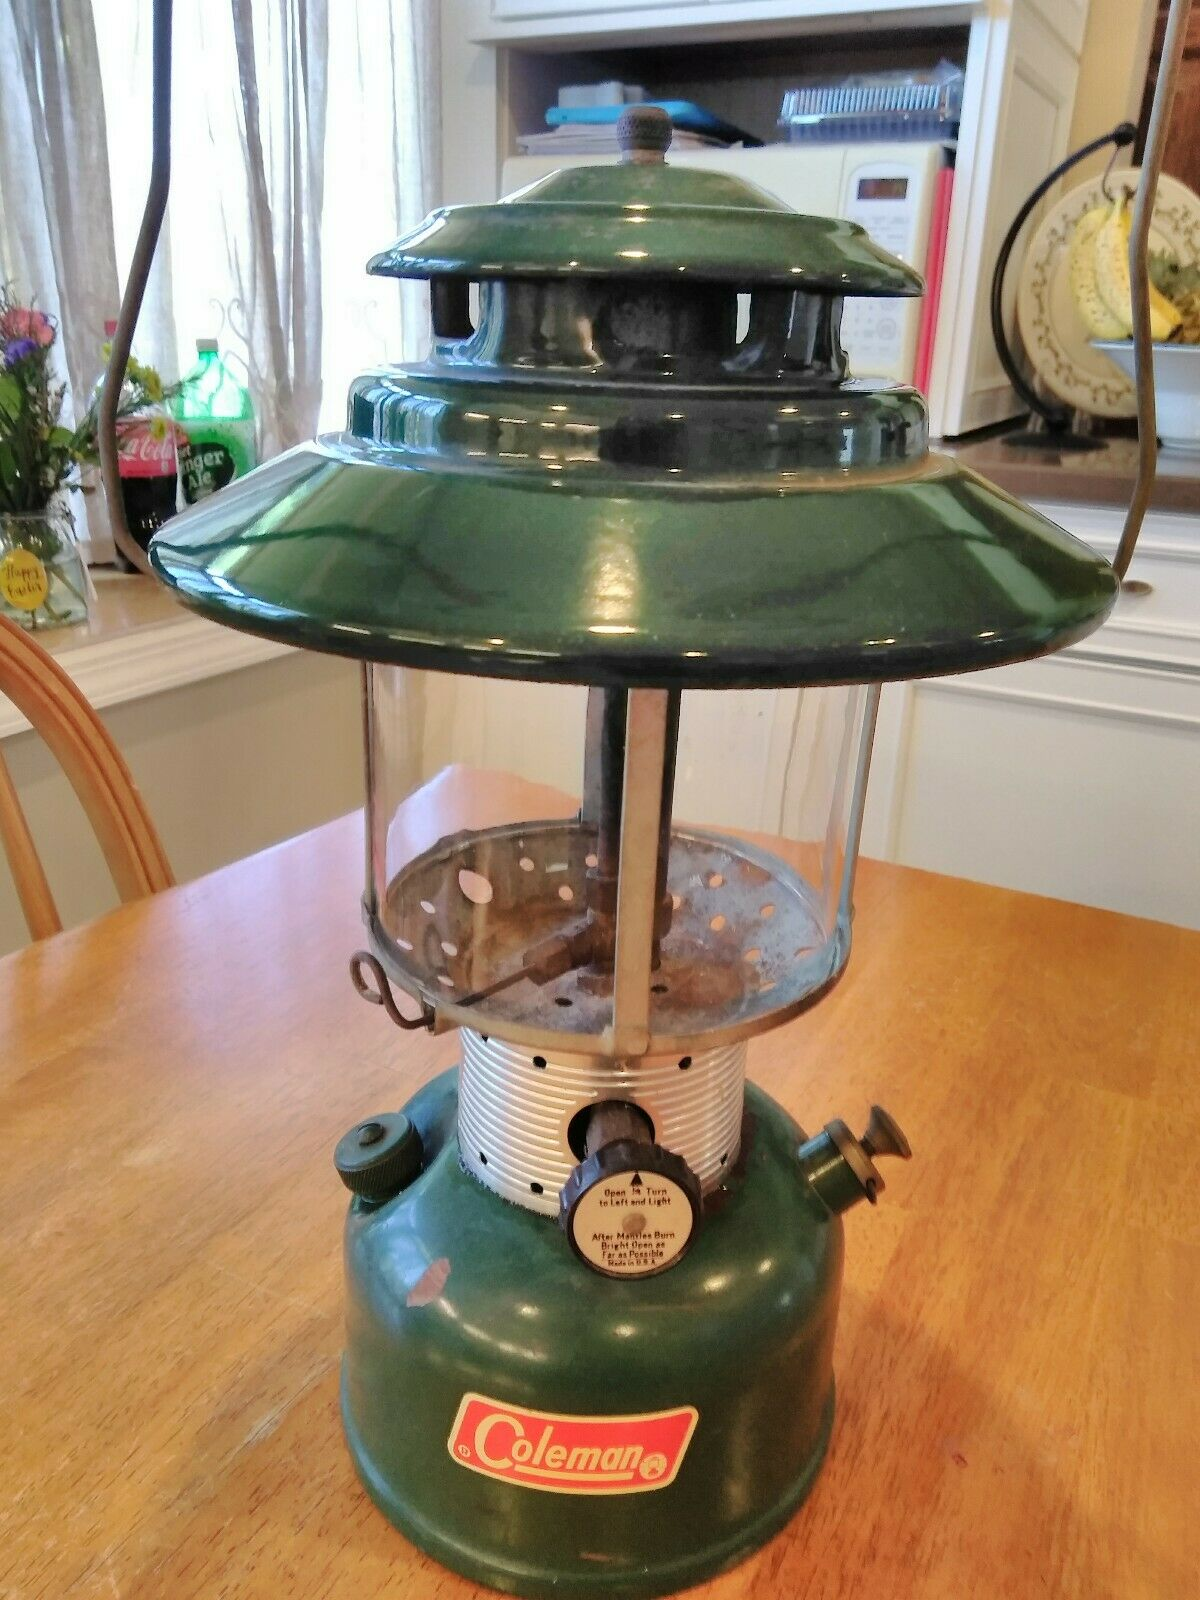 COLEMAN 228F LANTERN 1970 BIG TOP GREEN PORCELAIN DOUBLE MANTEL CAMPING LIGHT